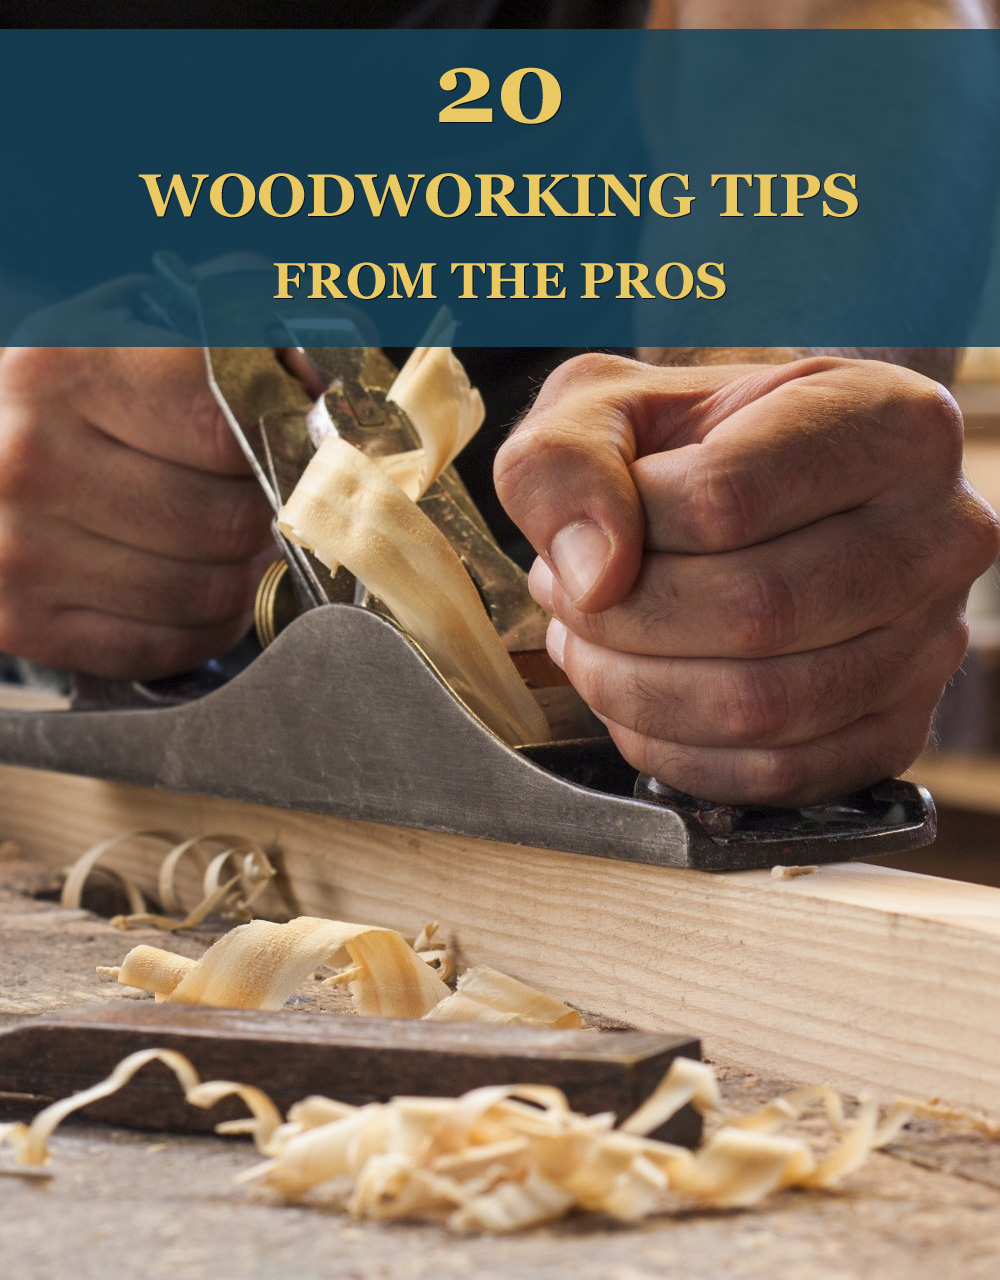 20 Woodworking Tips From The Pros